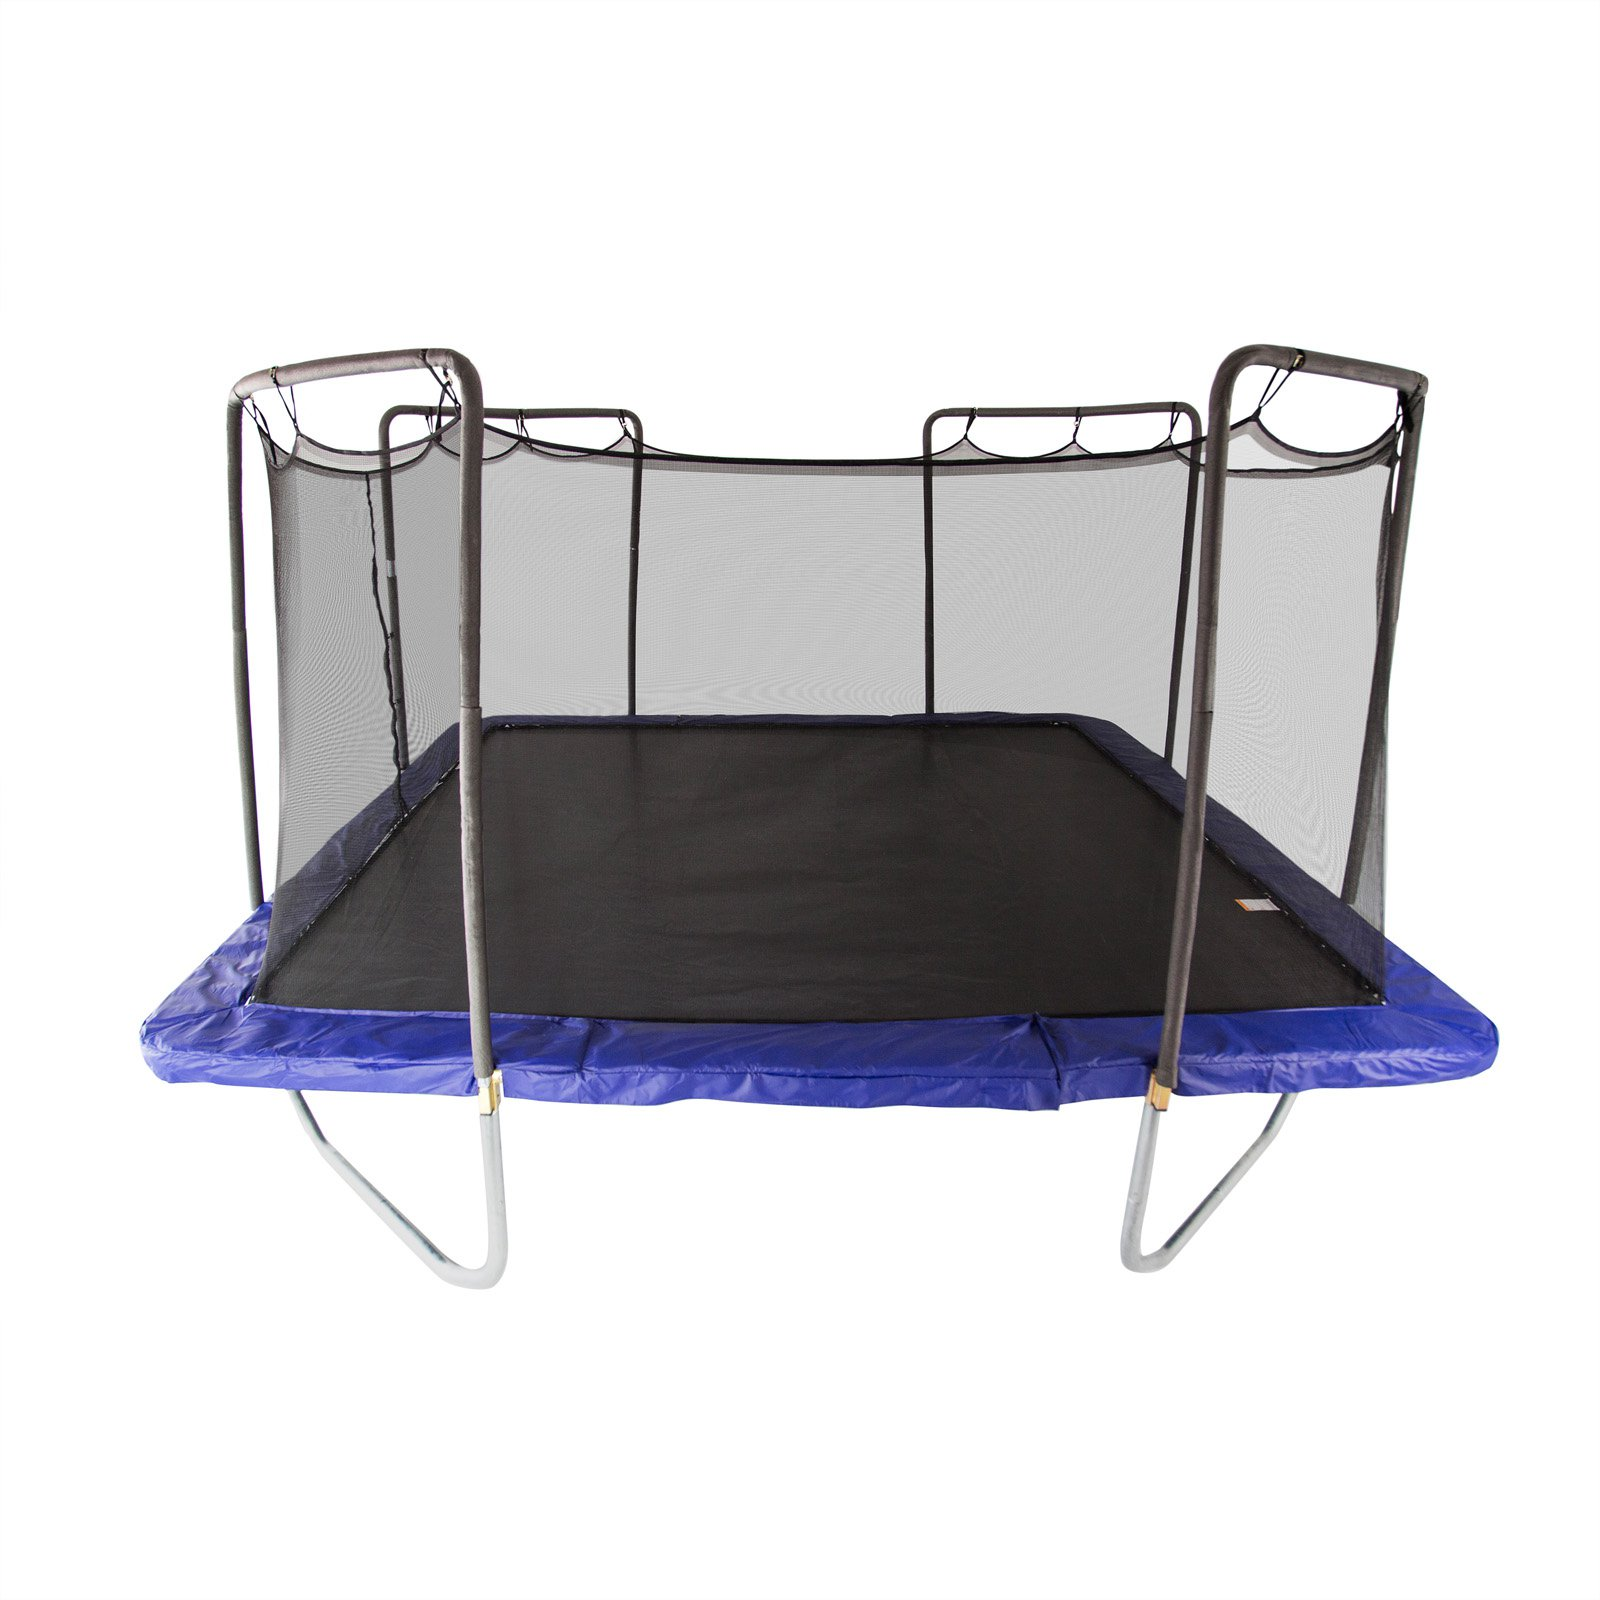 Skywalker Trampolines Square 15 x 15 Foot Trampoline, with Safety Enclosure, Blue